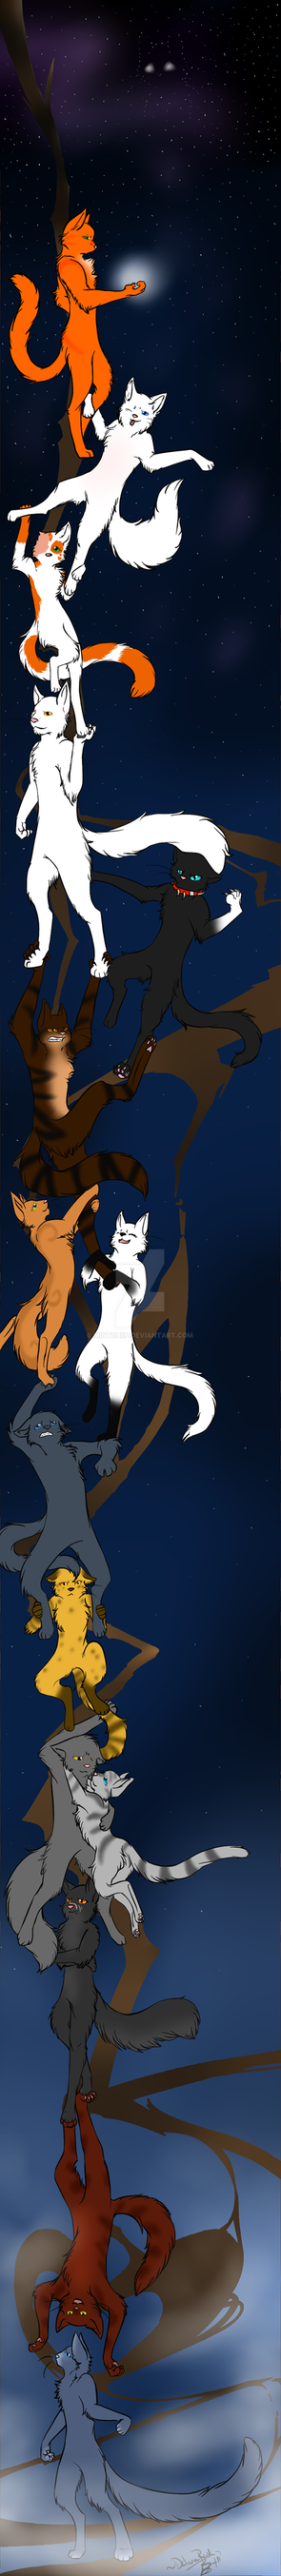 Durarara - Warrior Cats by LindsayPrower